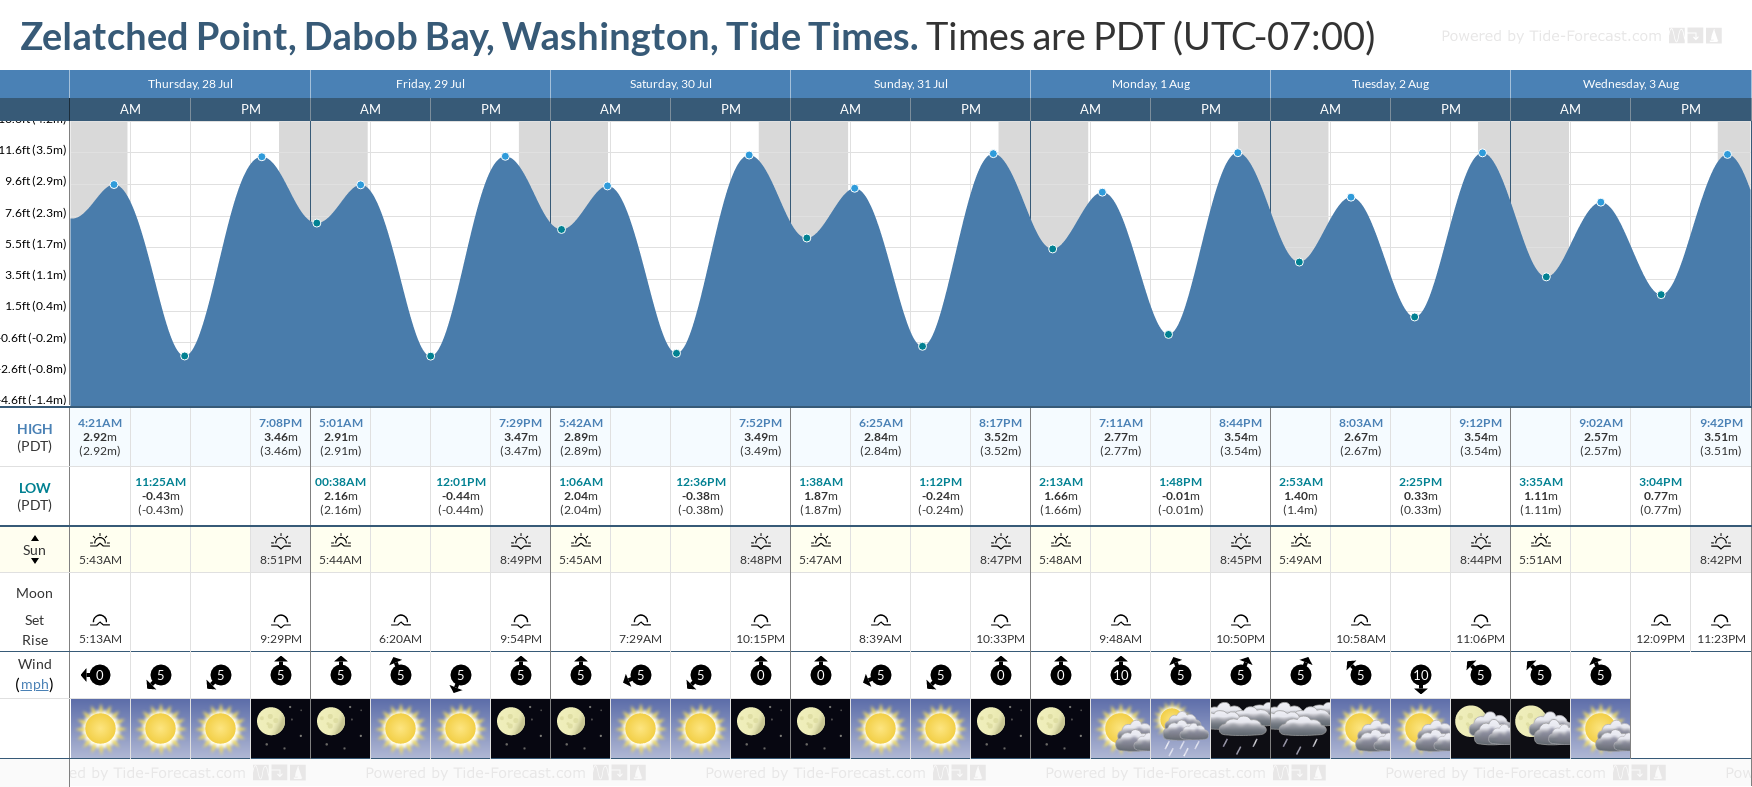 Zelatched Point, Dabob Bay, Washington Tide Chart including high and low tide tide times for the next 7 days